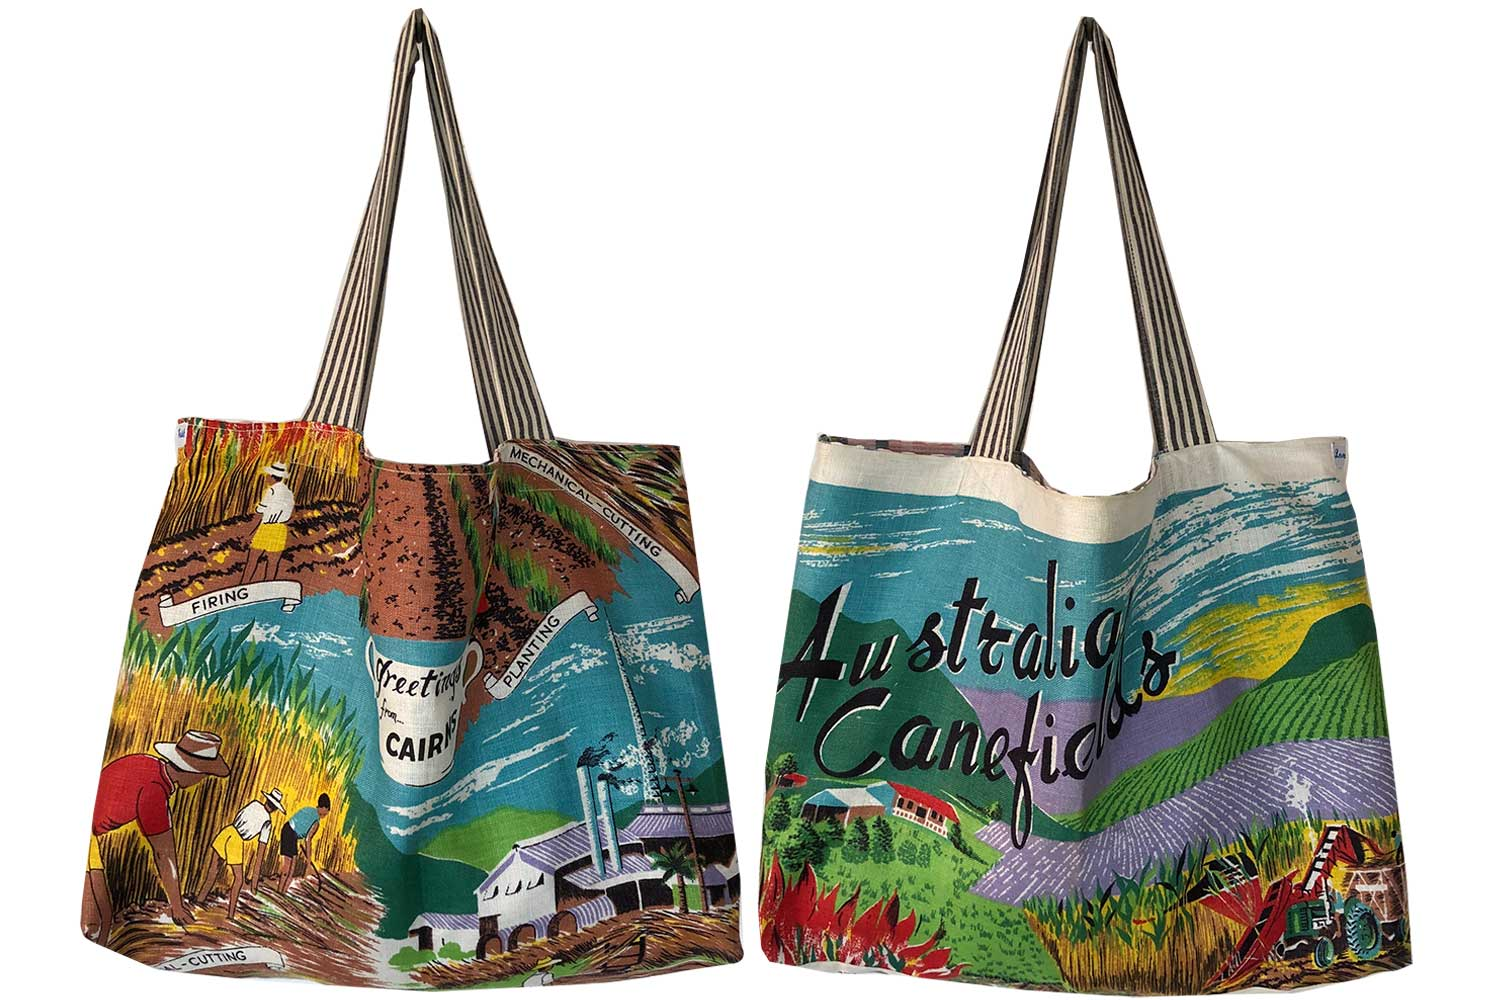 Greetings from Cairns canefields teatowel tote